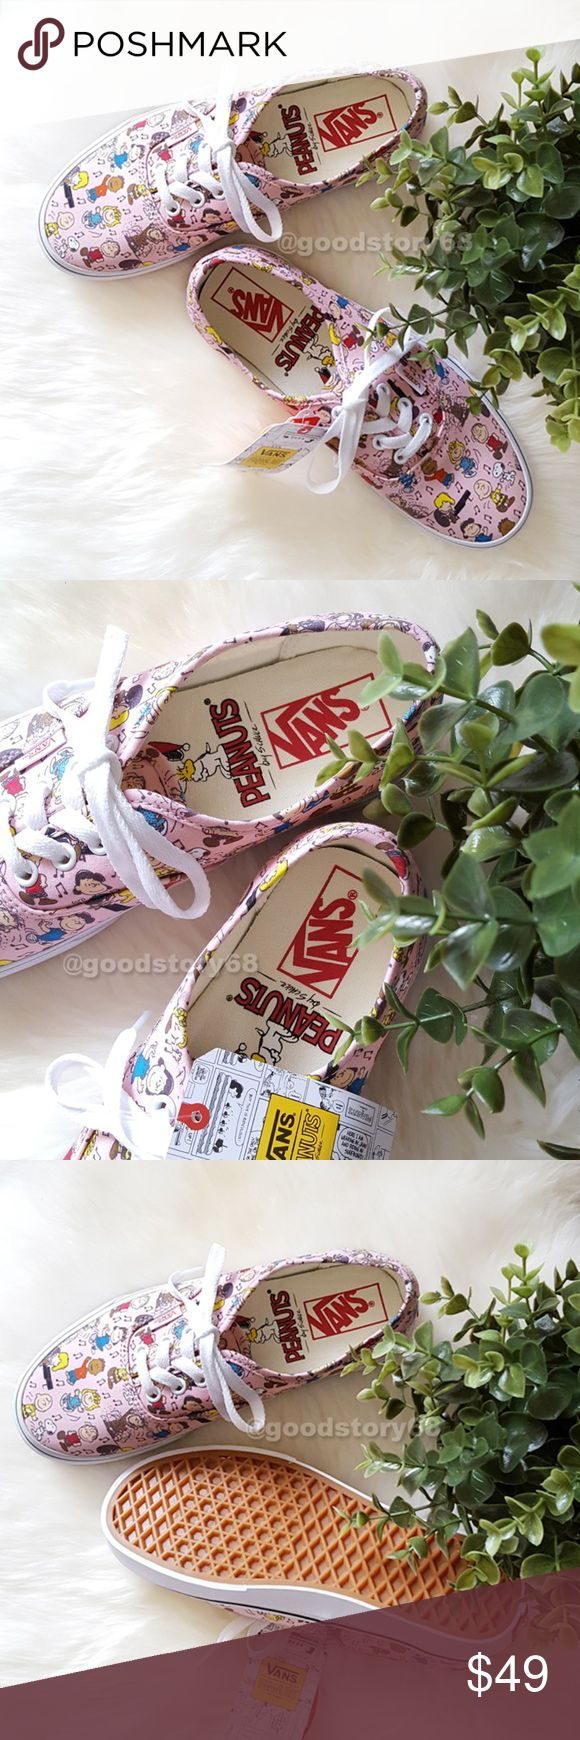 Vans x Peanuts Dance Pink & White Skate Shoes Vans original and now iconic style, is a simple low top, lace-up with durable canvas upper, metal eyelets, Vans flag label and Vans original waffle outsole. Vans Shoes Athletic Shoes